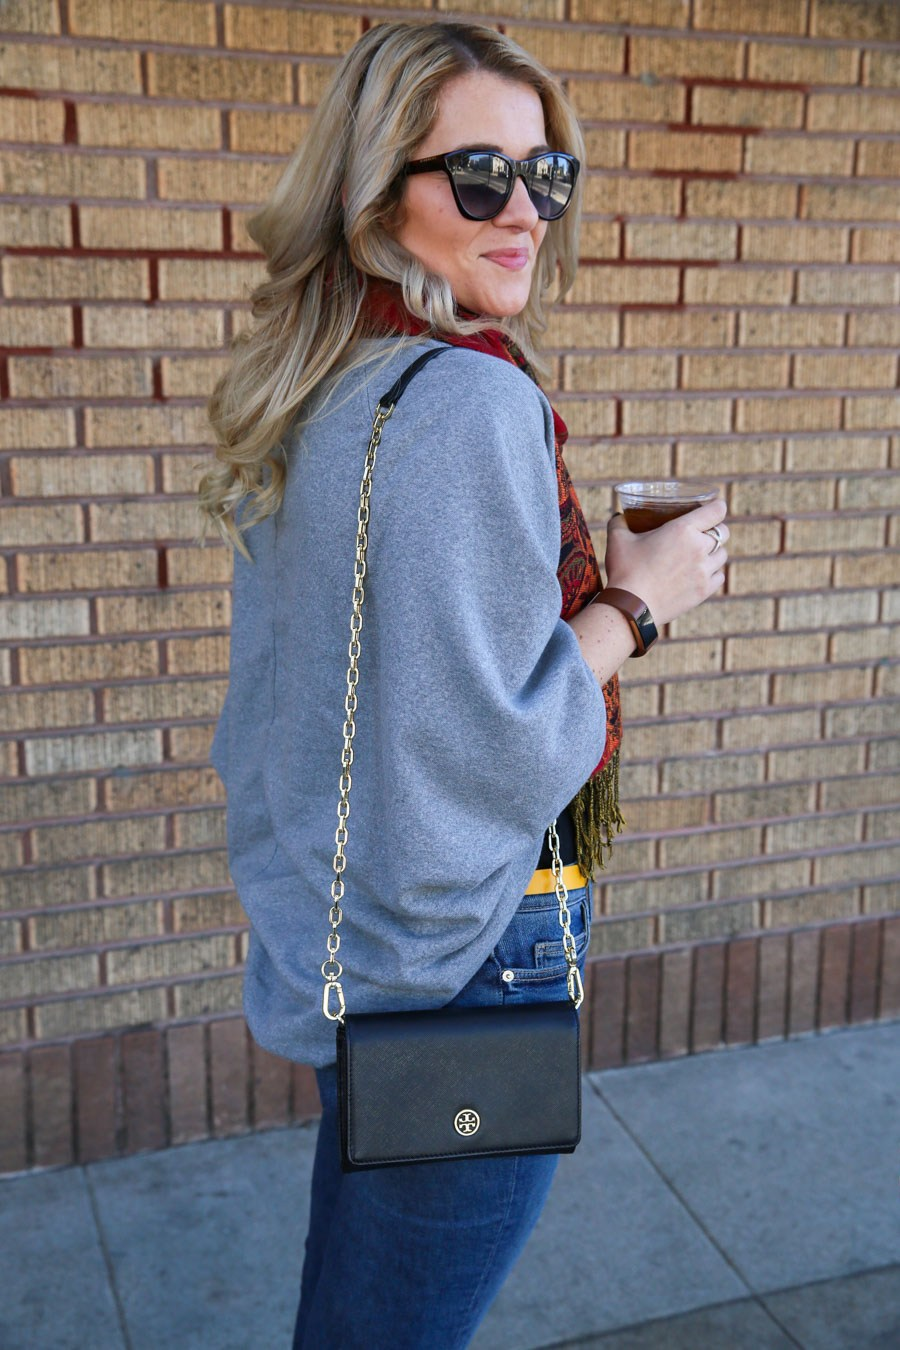 Tory Burch Clutch Outfit with Black Leather Jacket